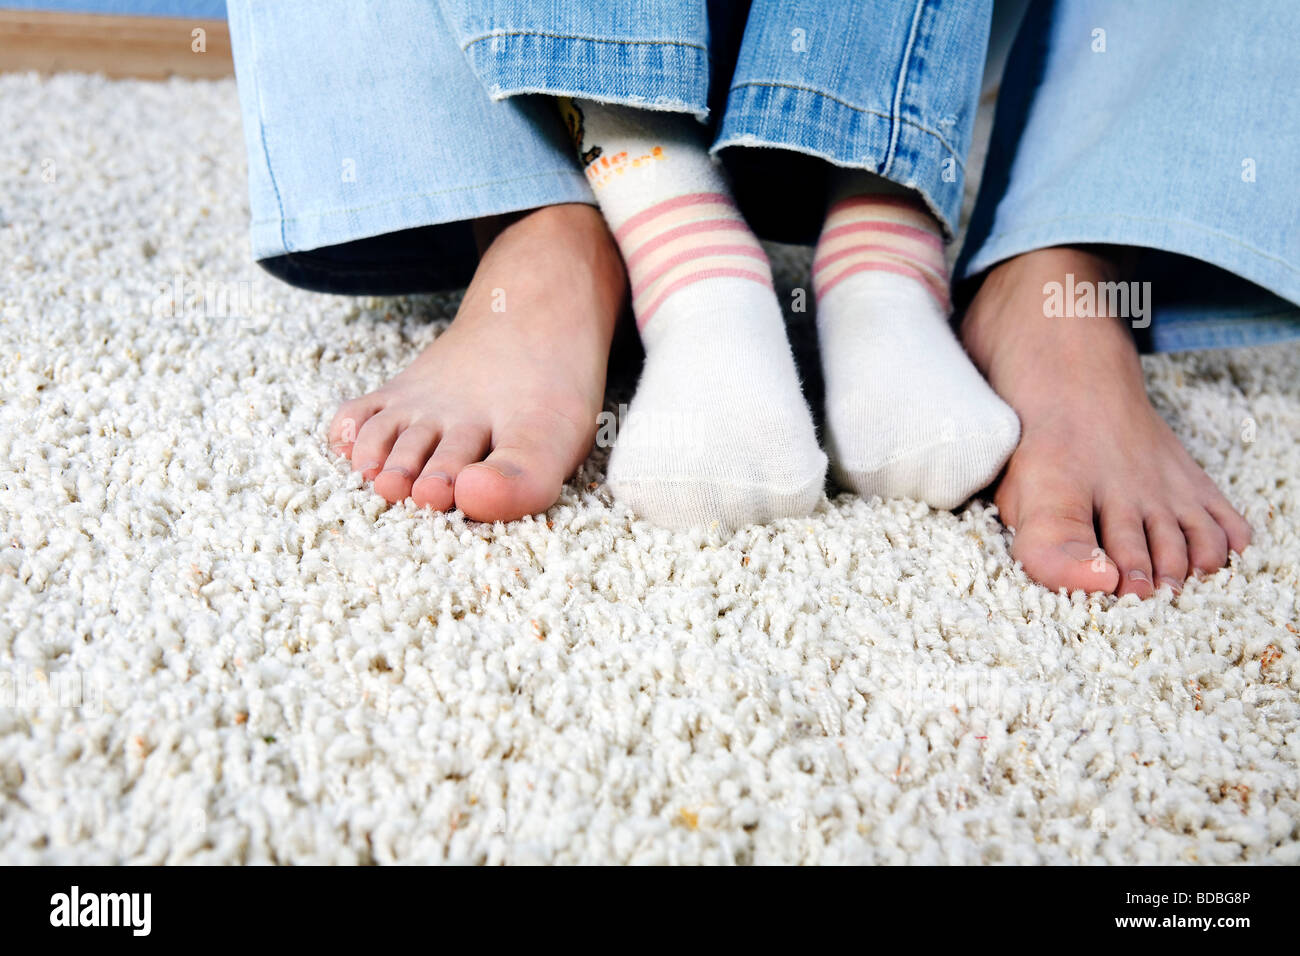 closeup of feet of mother and child sitting together on carpet